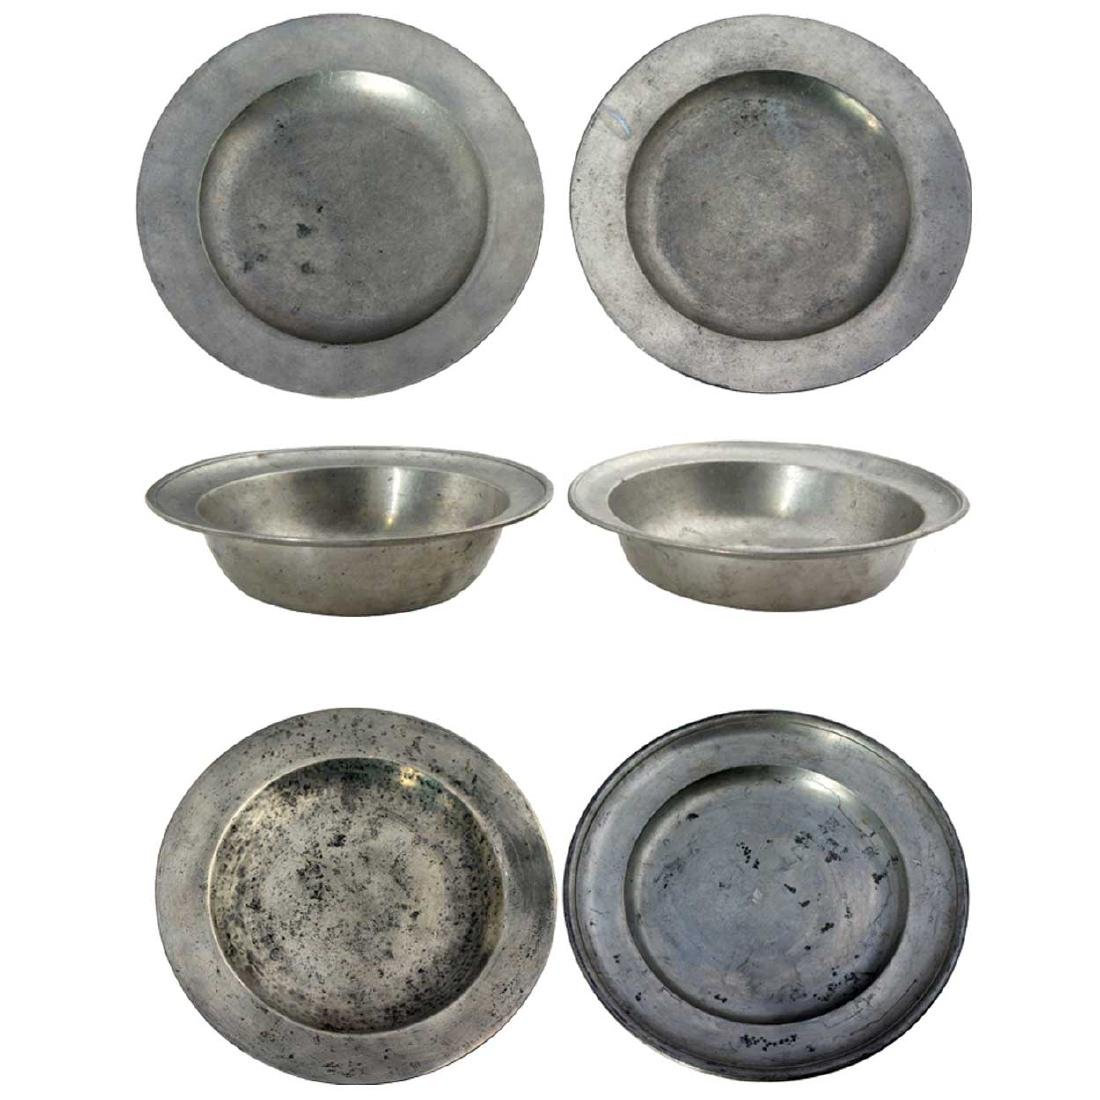 6 Antique Pewter Bowls and Plates